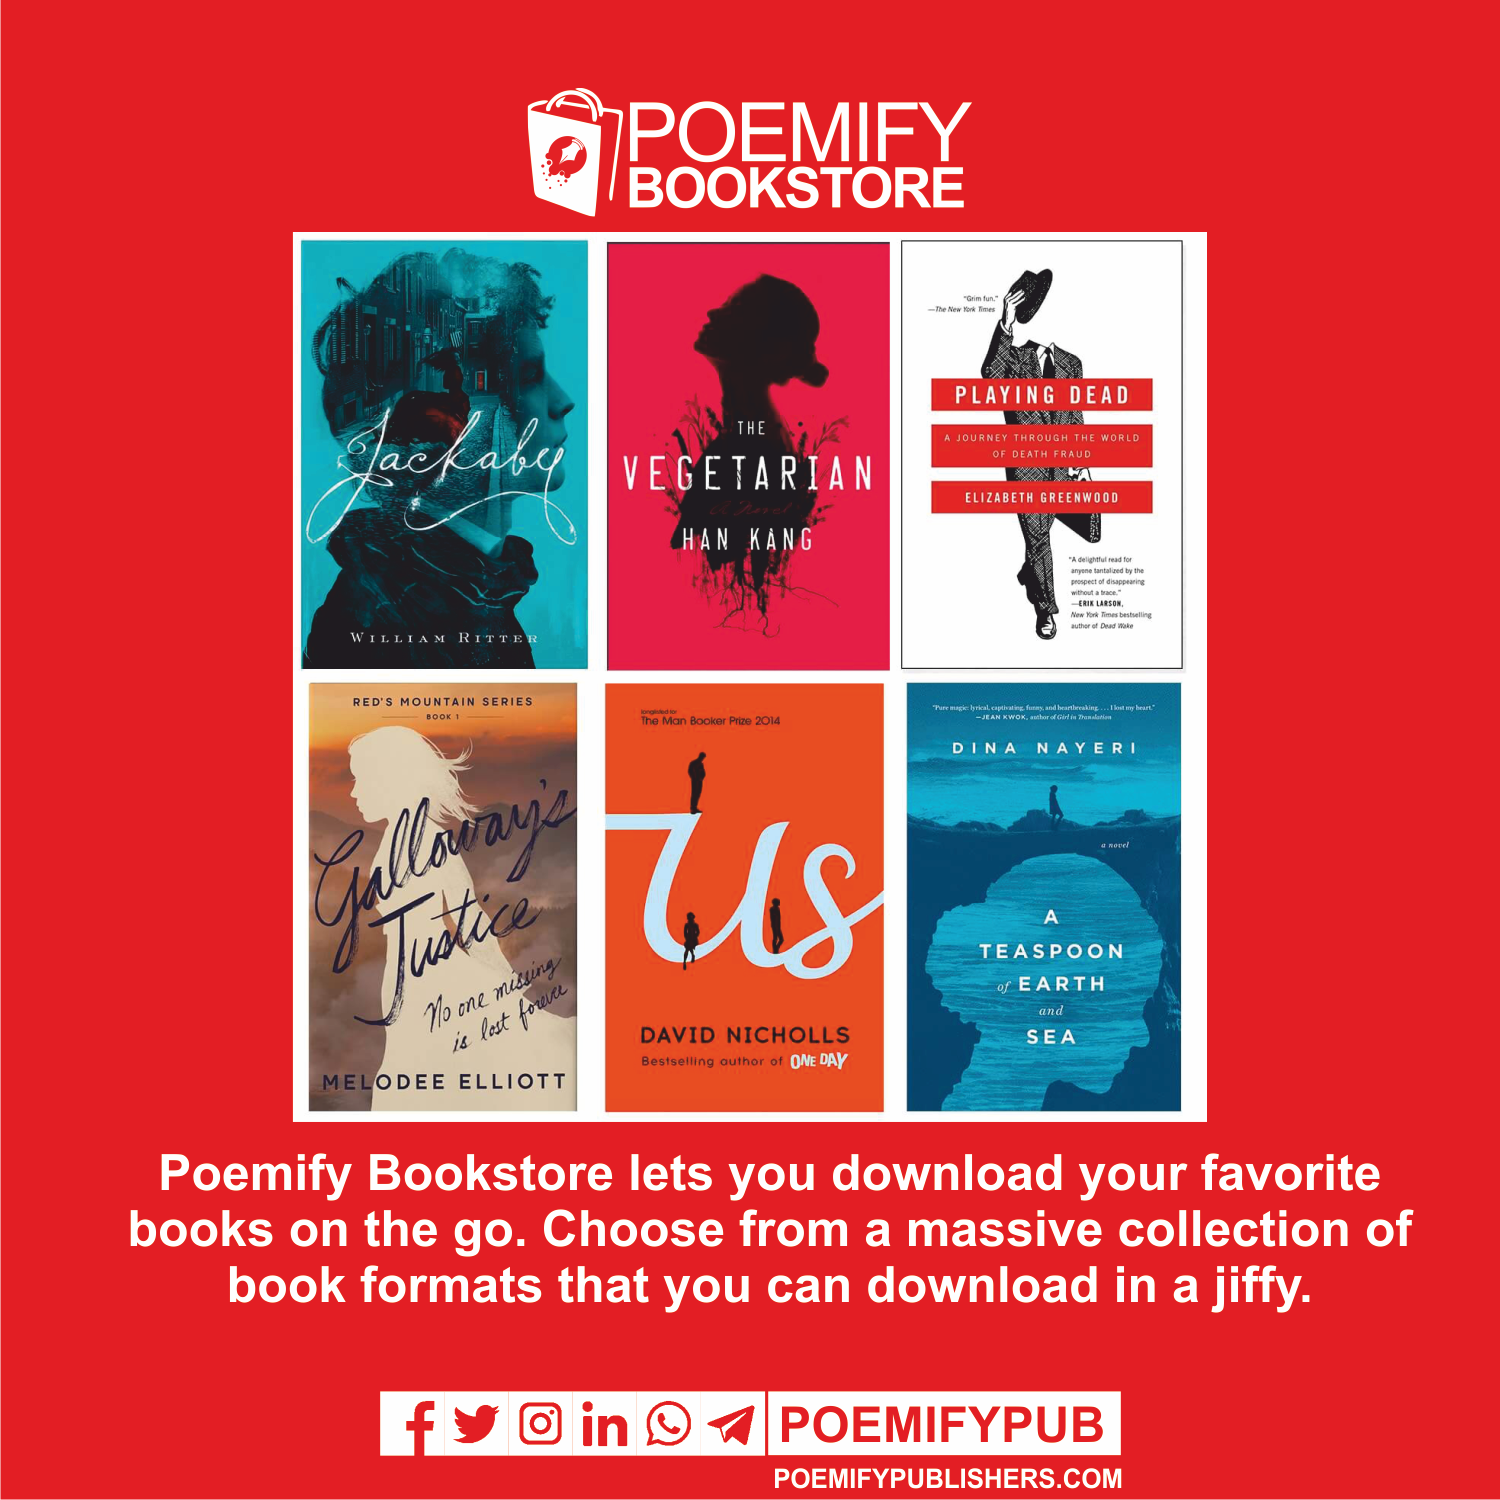 Poemify Bookstore